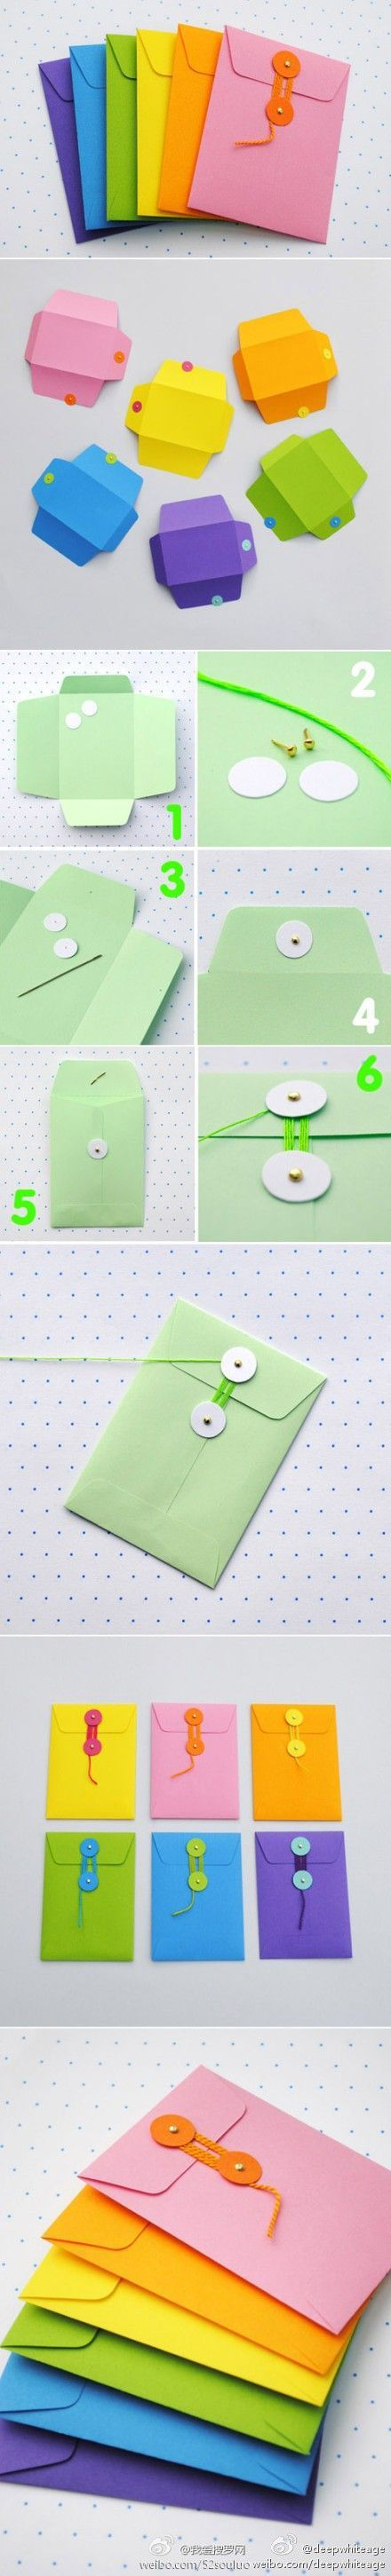 How to Make String-tie Envelopes to use as Paper Pockets